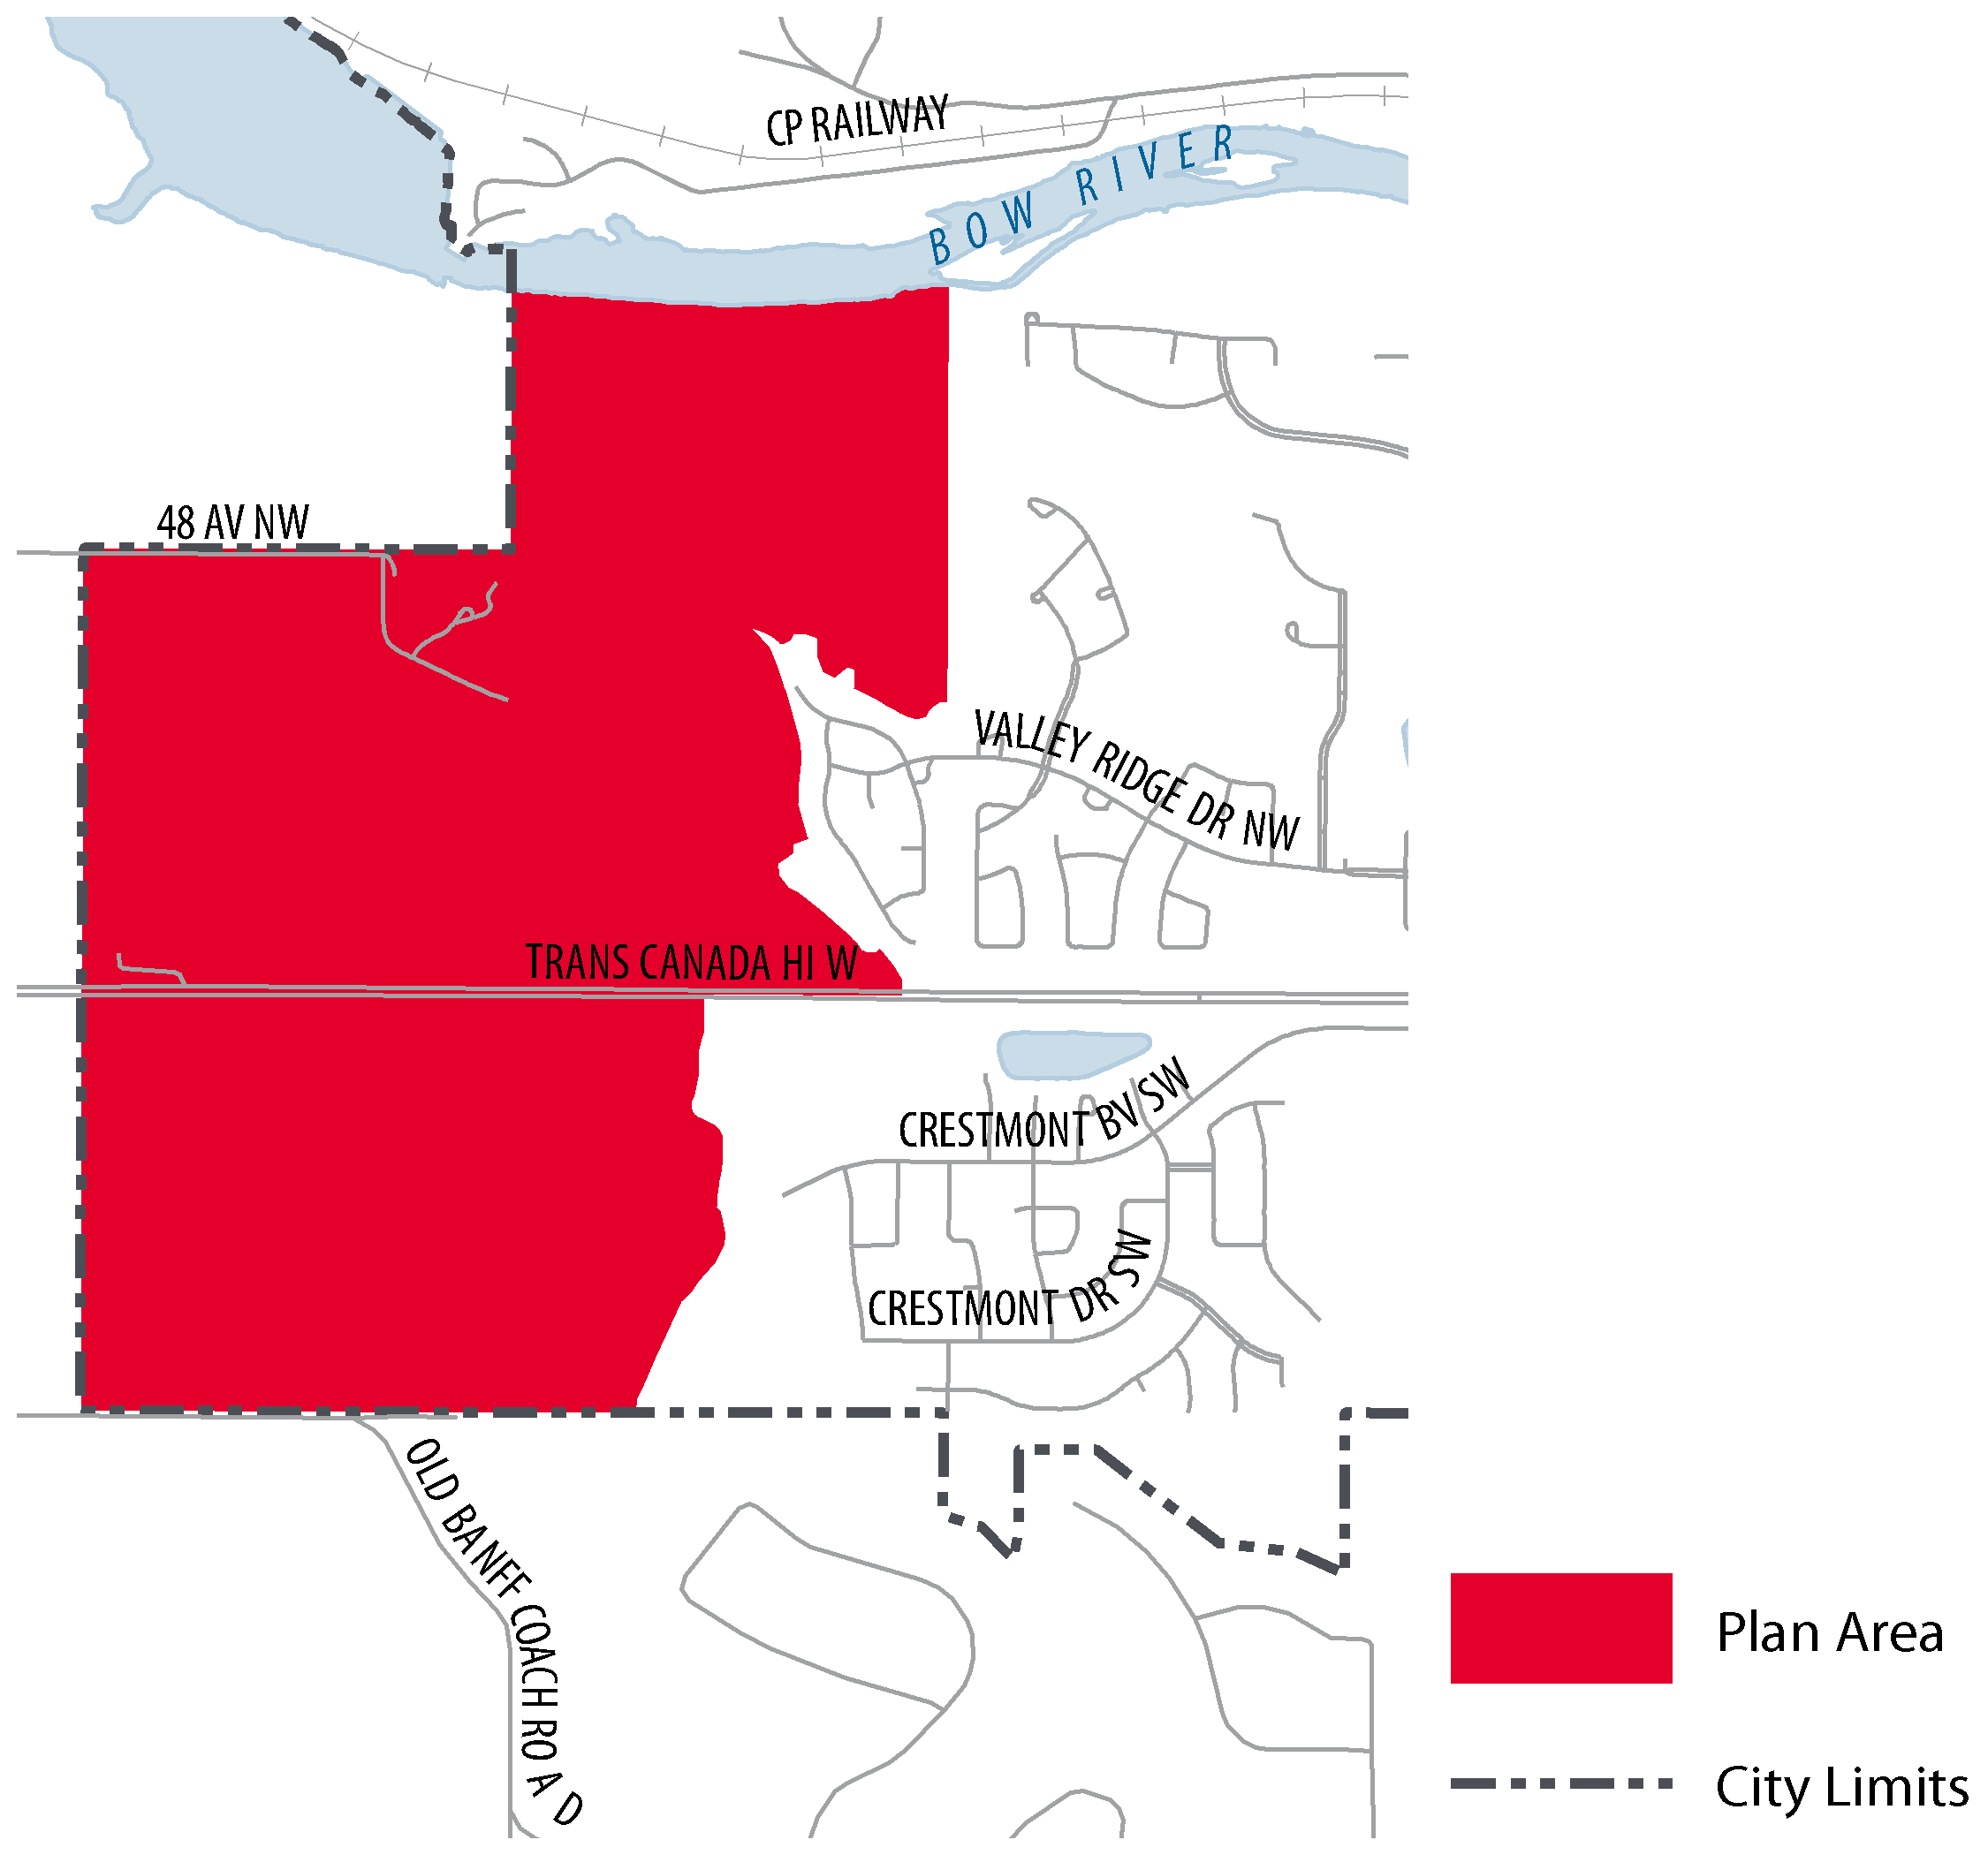 Map of the Area Structure Plan Area. The plan area is bounded by the Bow River to the north, the communities of Valley Ridge and Crestmont to the east, and by Rocky View County to the south and west.